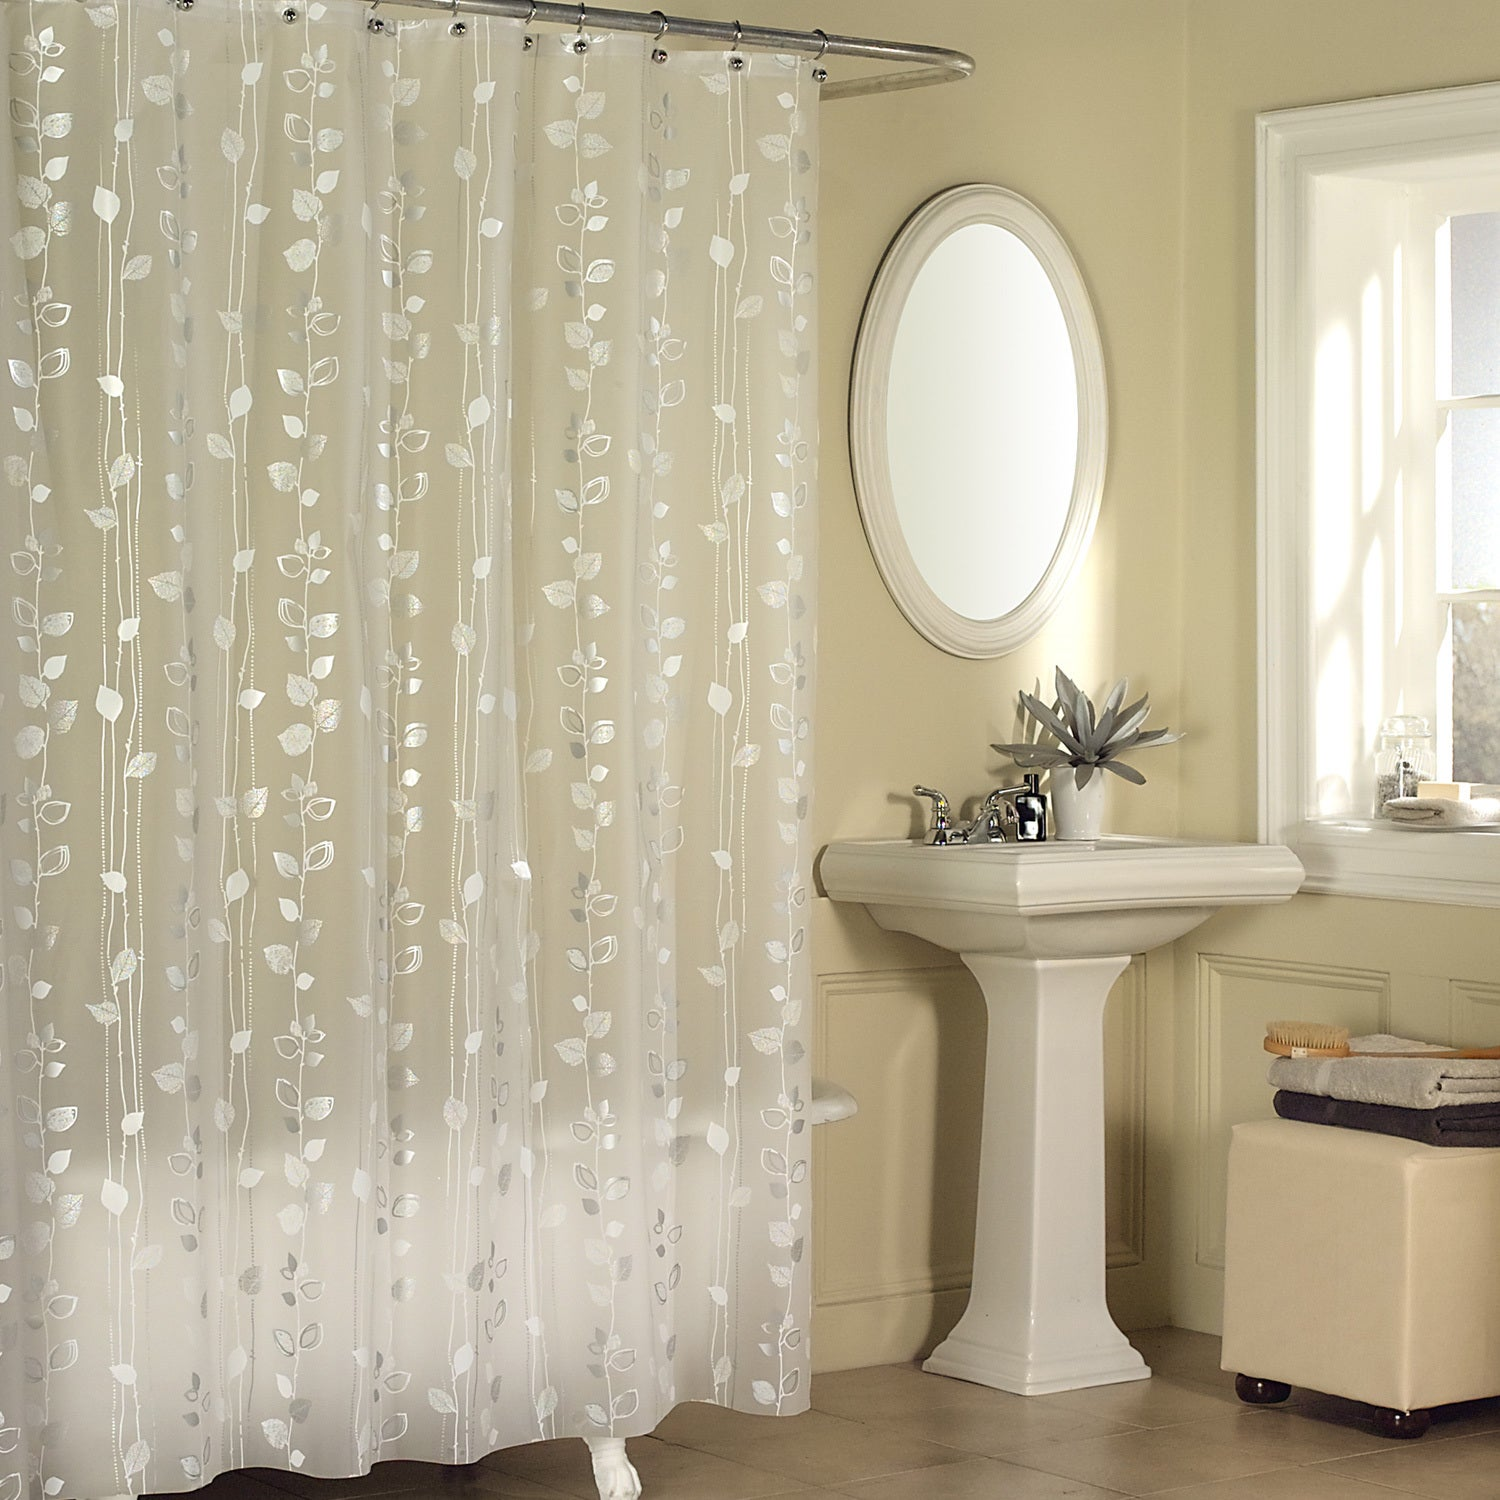 Shower Accessories | Find Great Bath & Towels Deals Shopping at ...